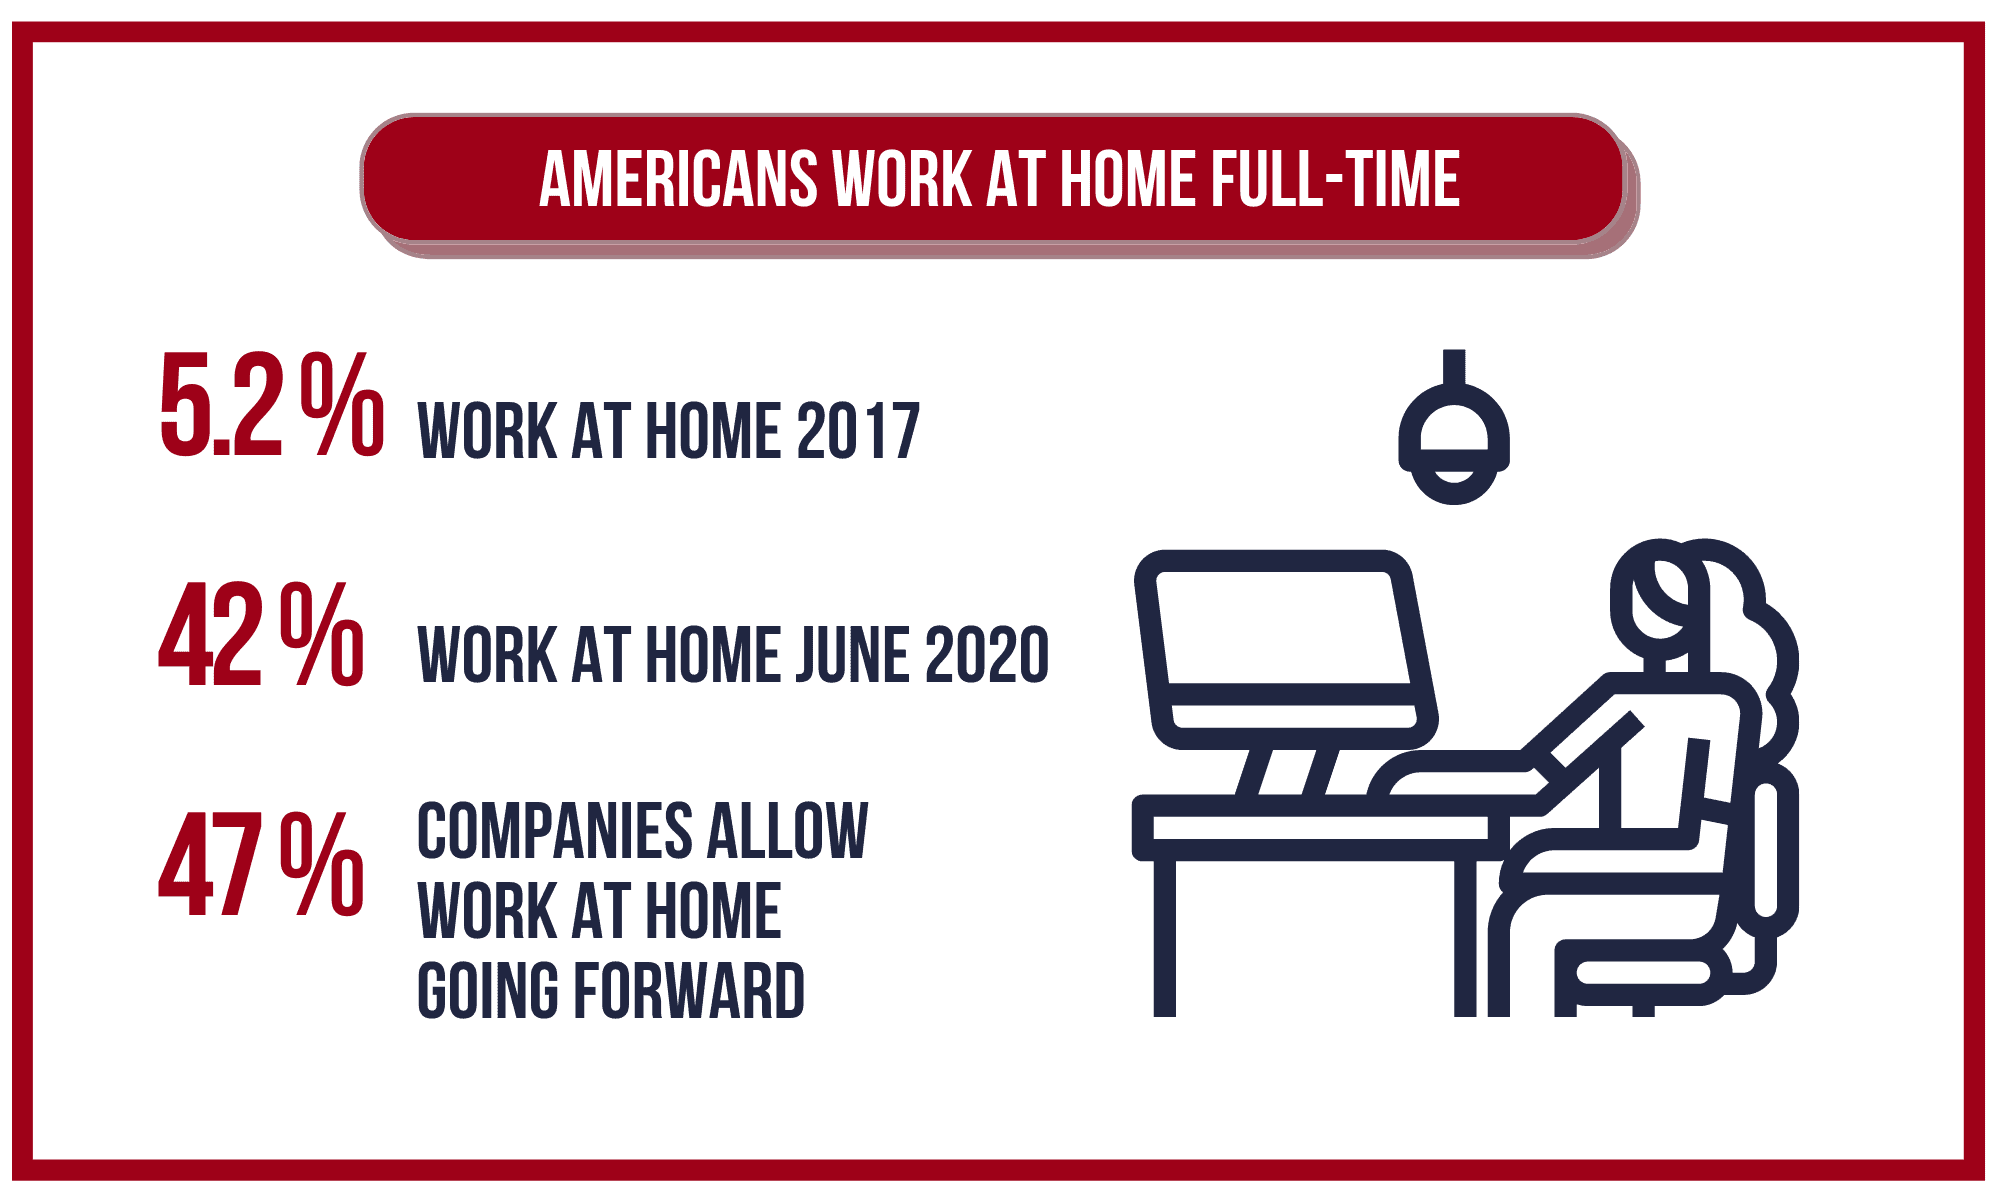 The number of Americans who work at home full-time.